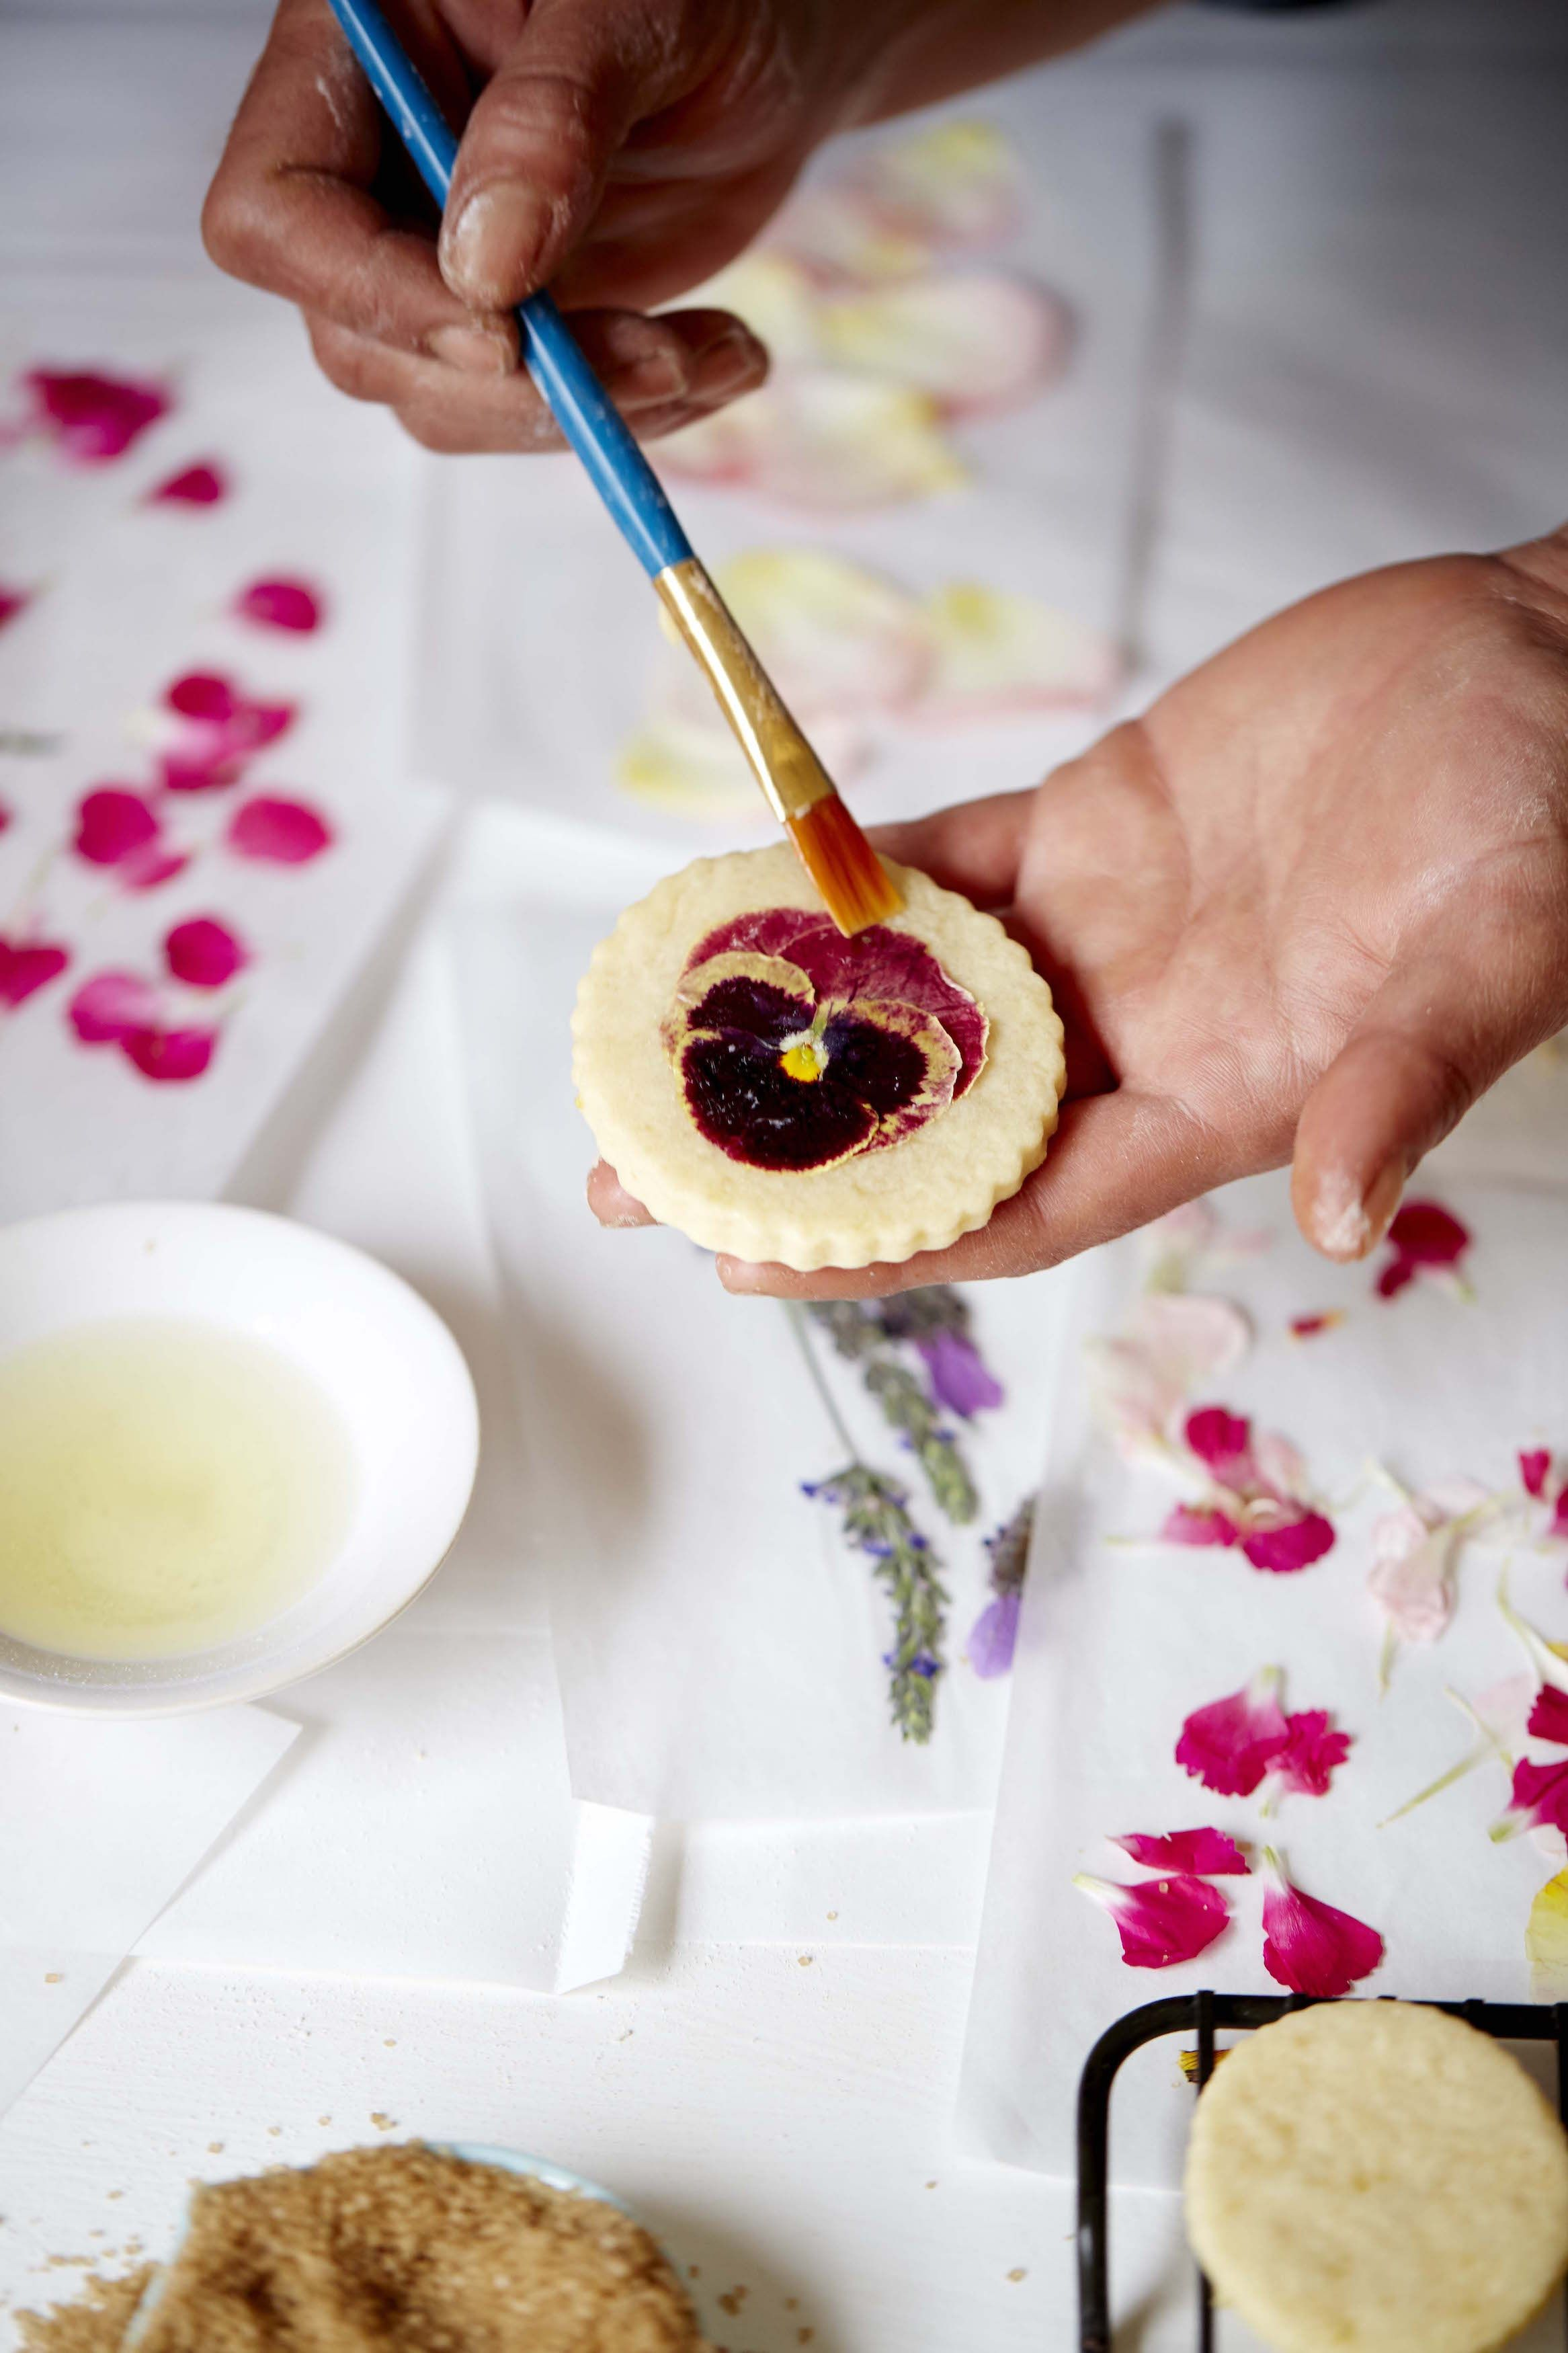 The Classic Sugar Cookie Recipe Gets Made Over With Edible Flowers